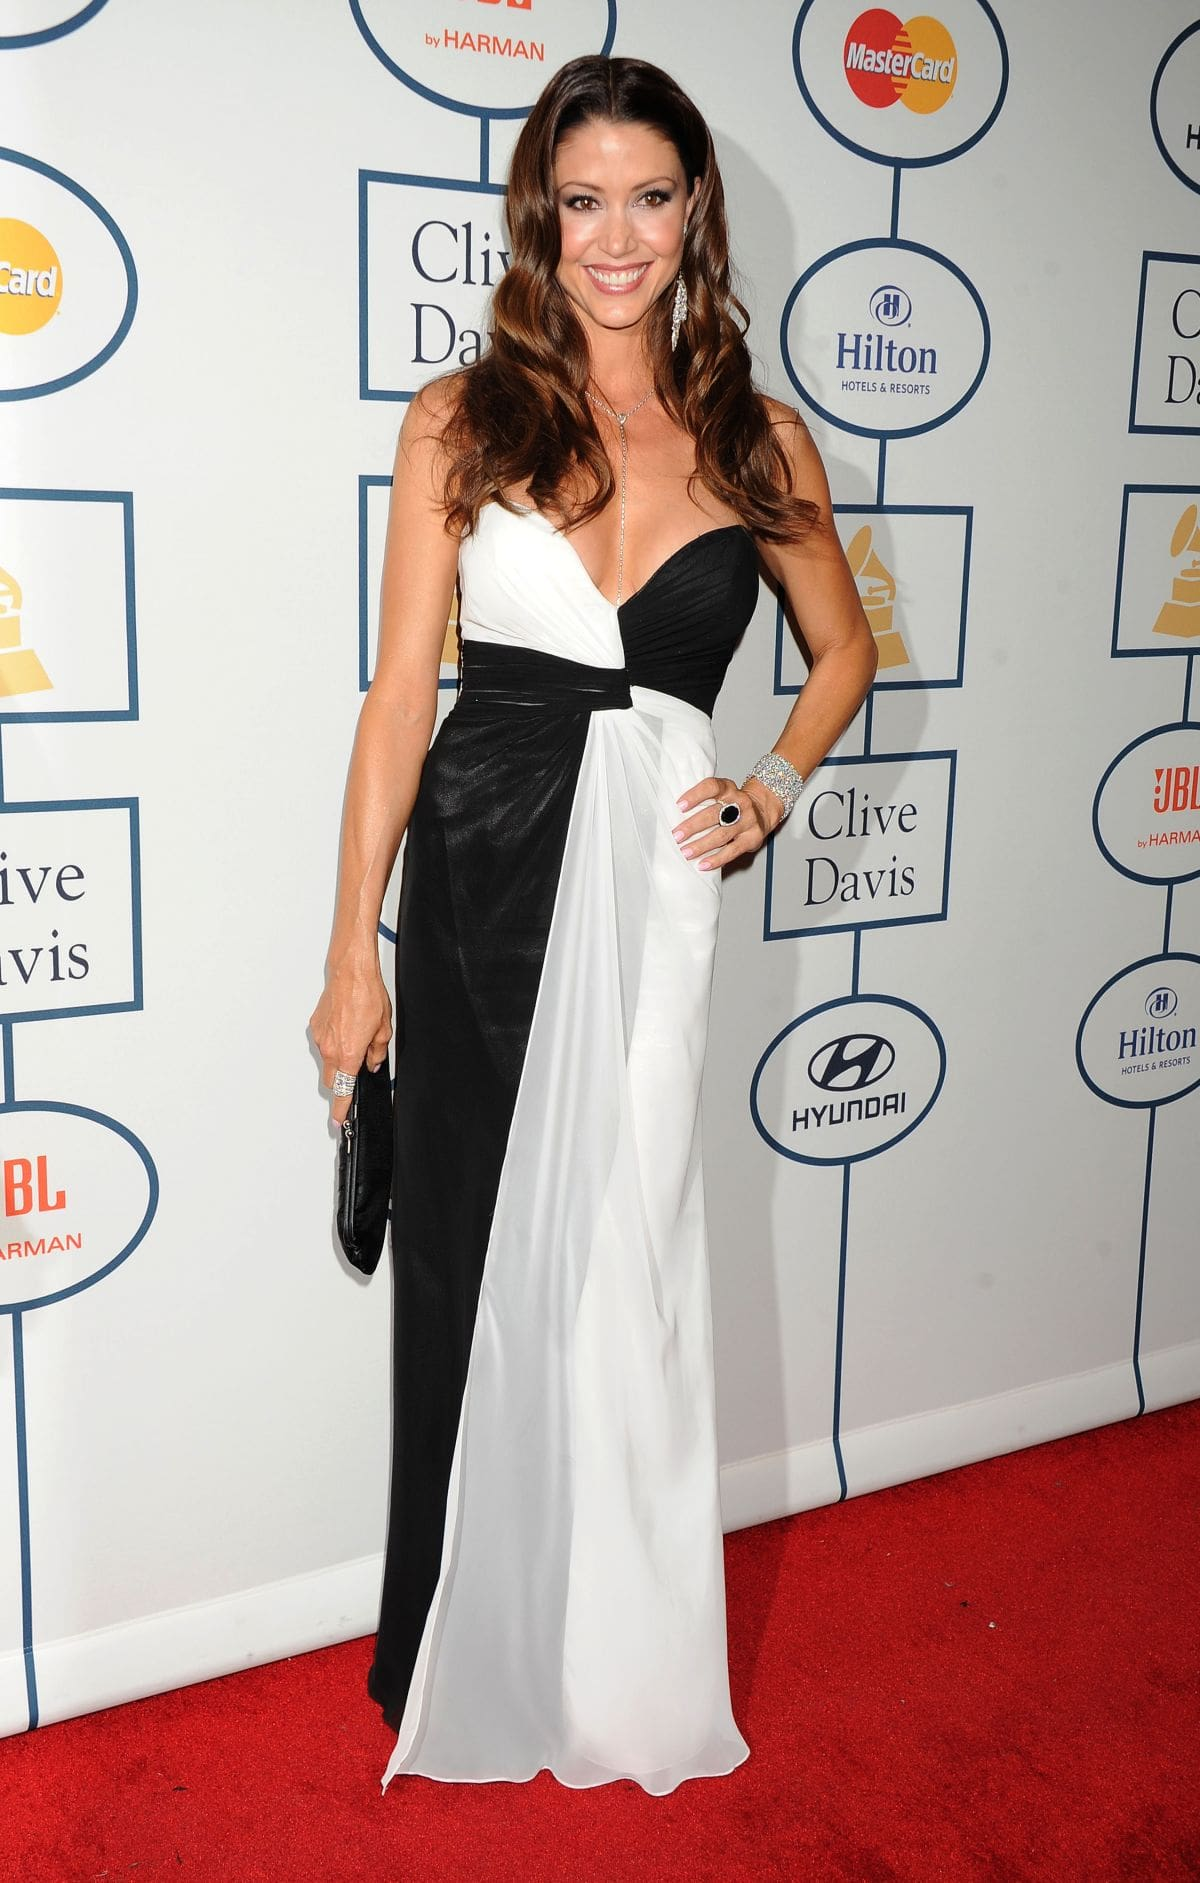 49 Hot Pictures Of Shannon Elizabeth Which Are Stunningly -4243